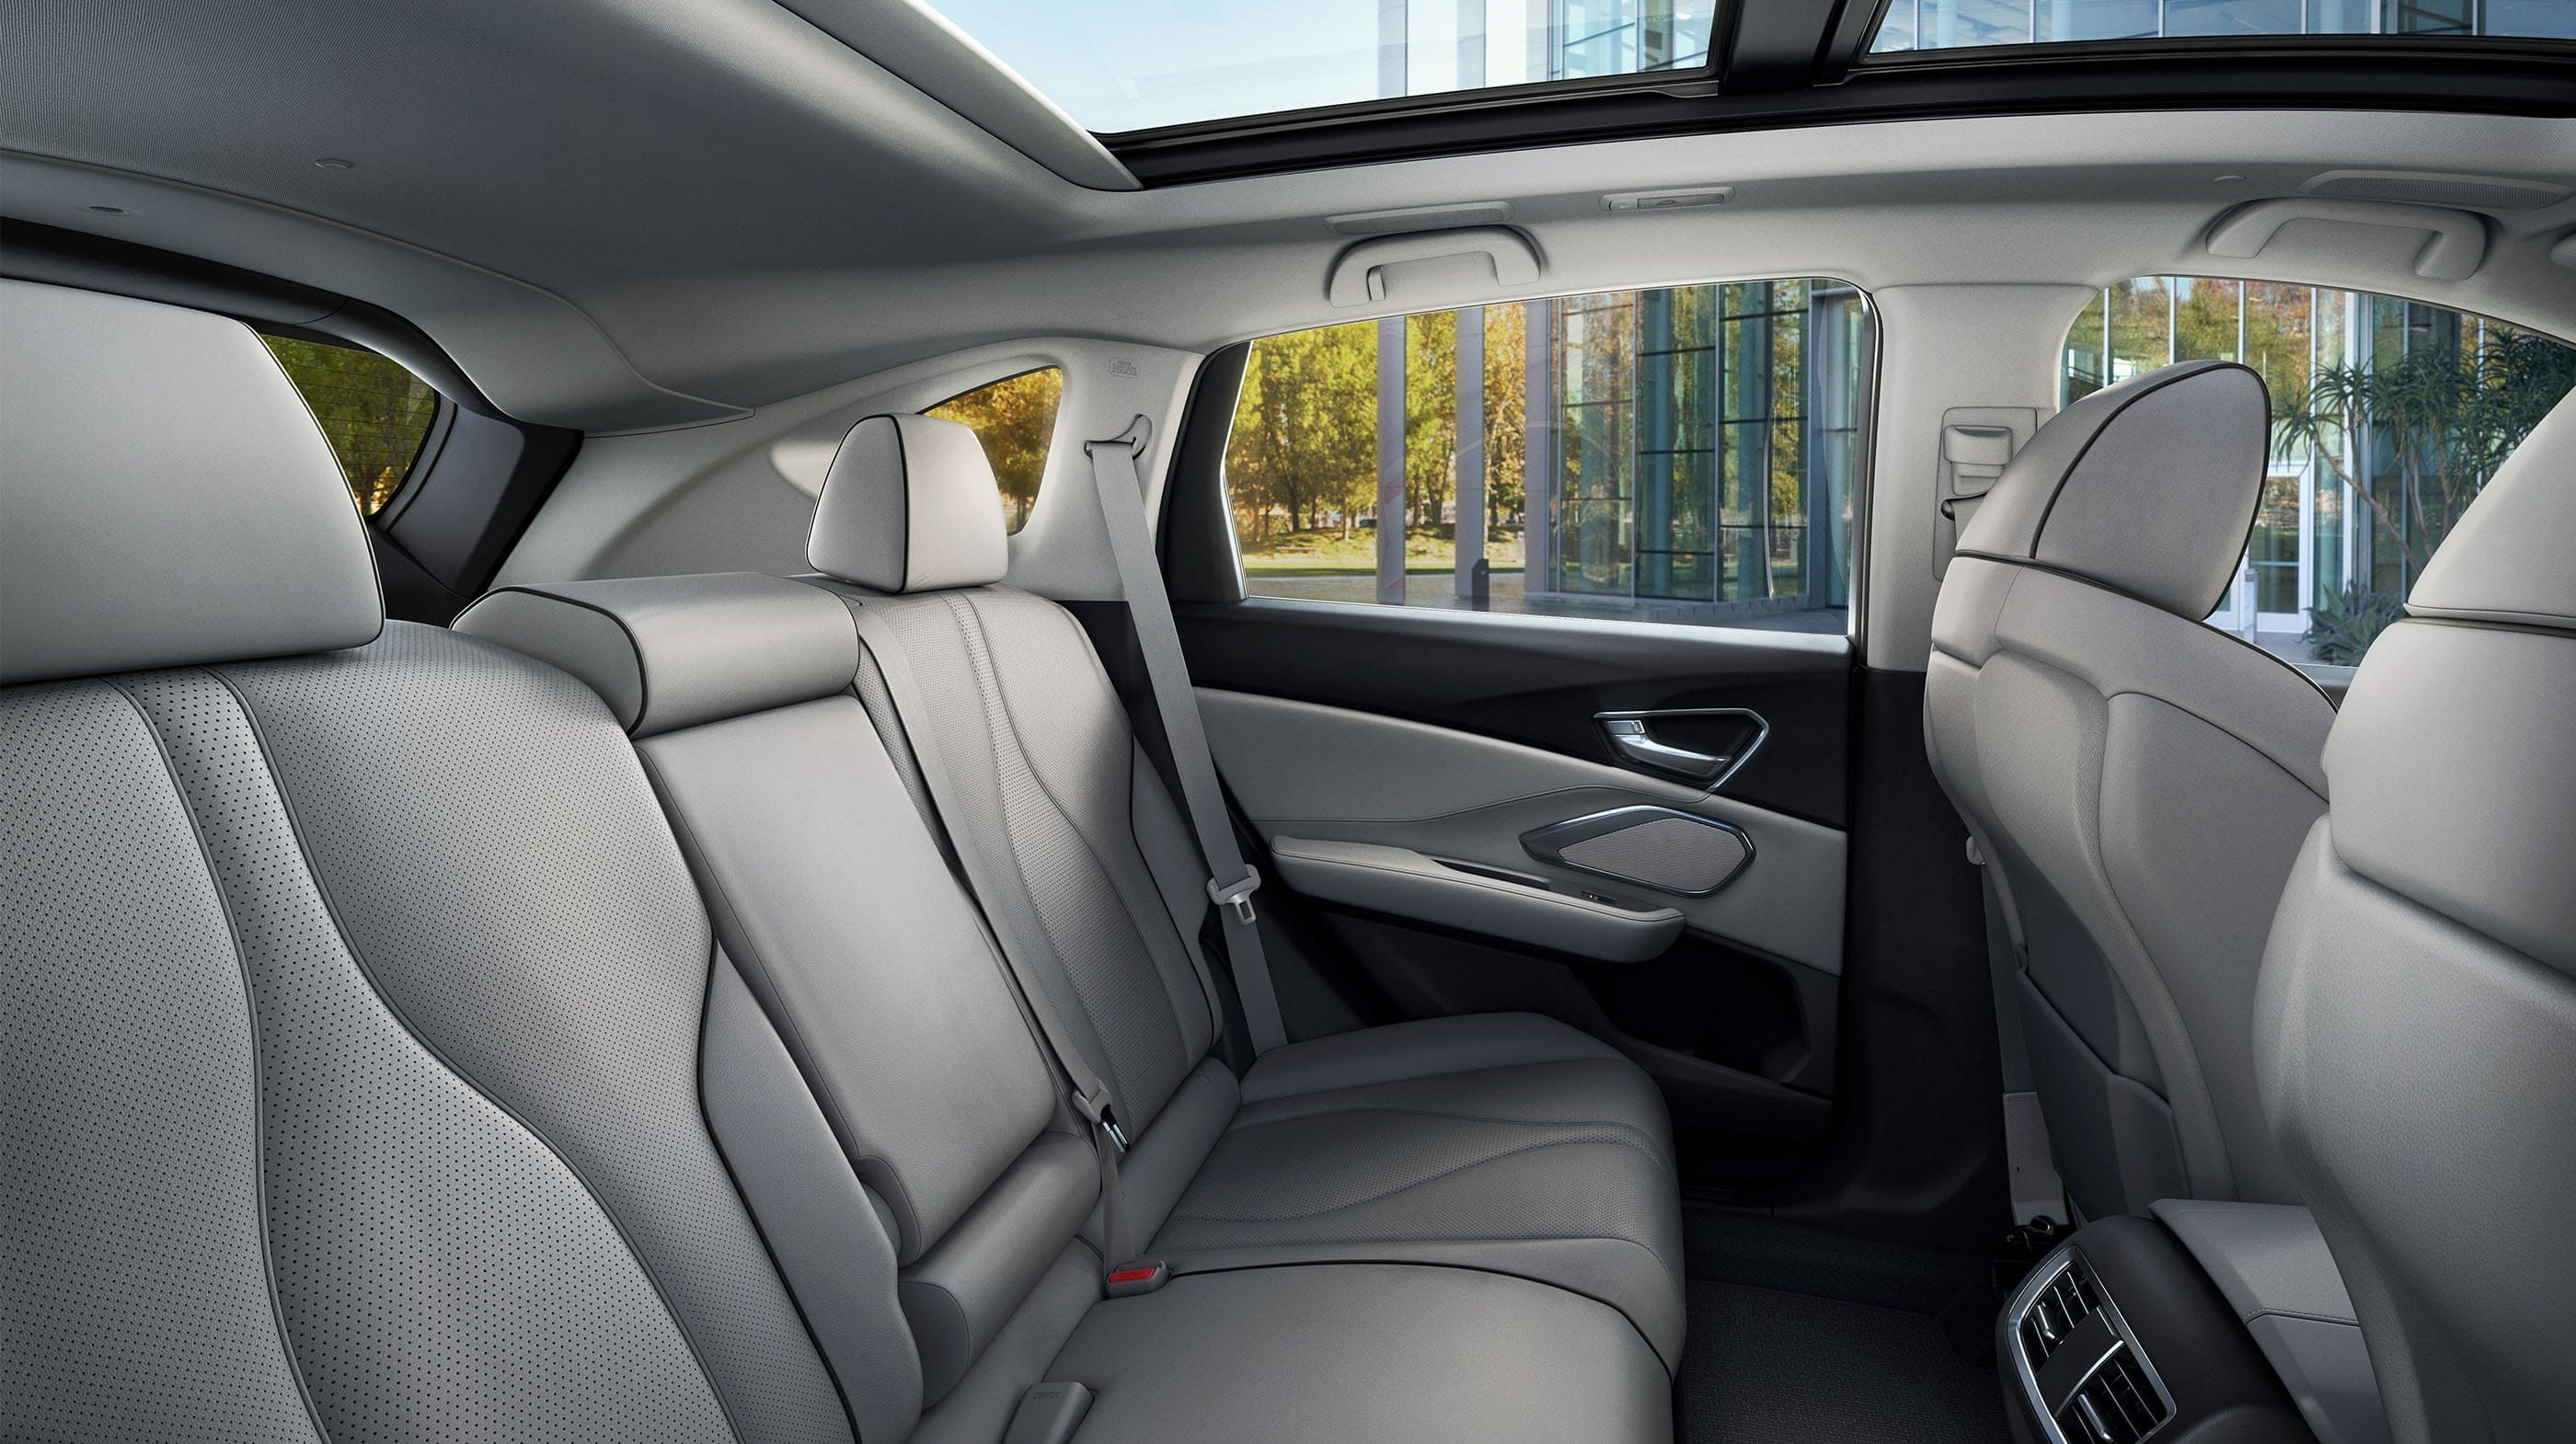 Spacious Cabin of the 2020 RDX